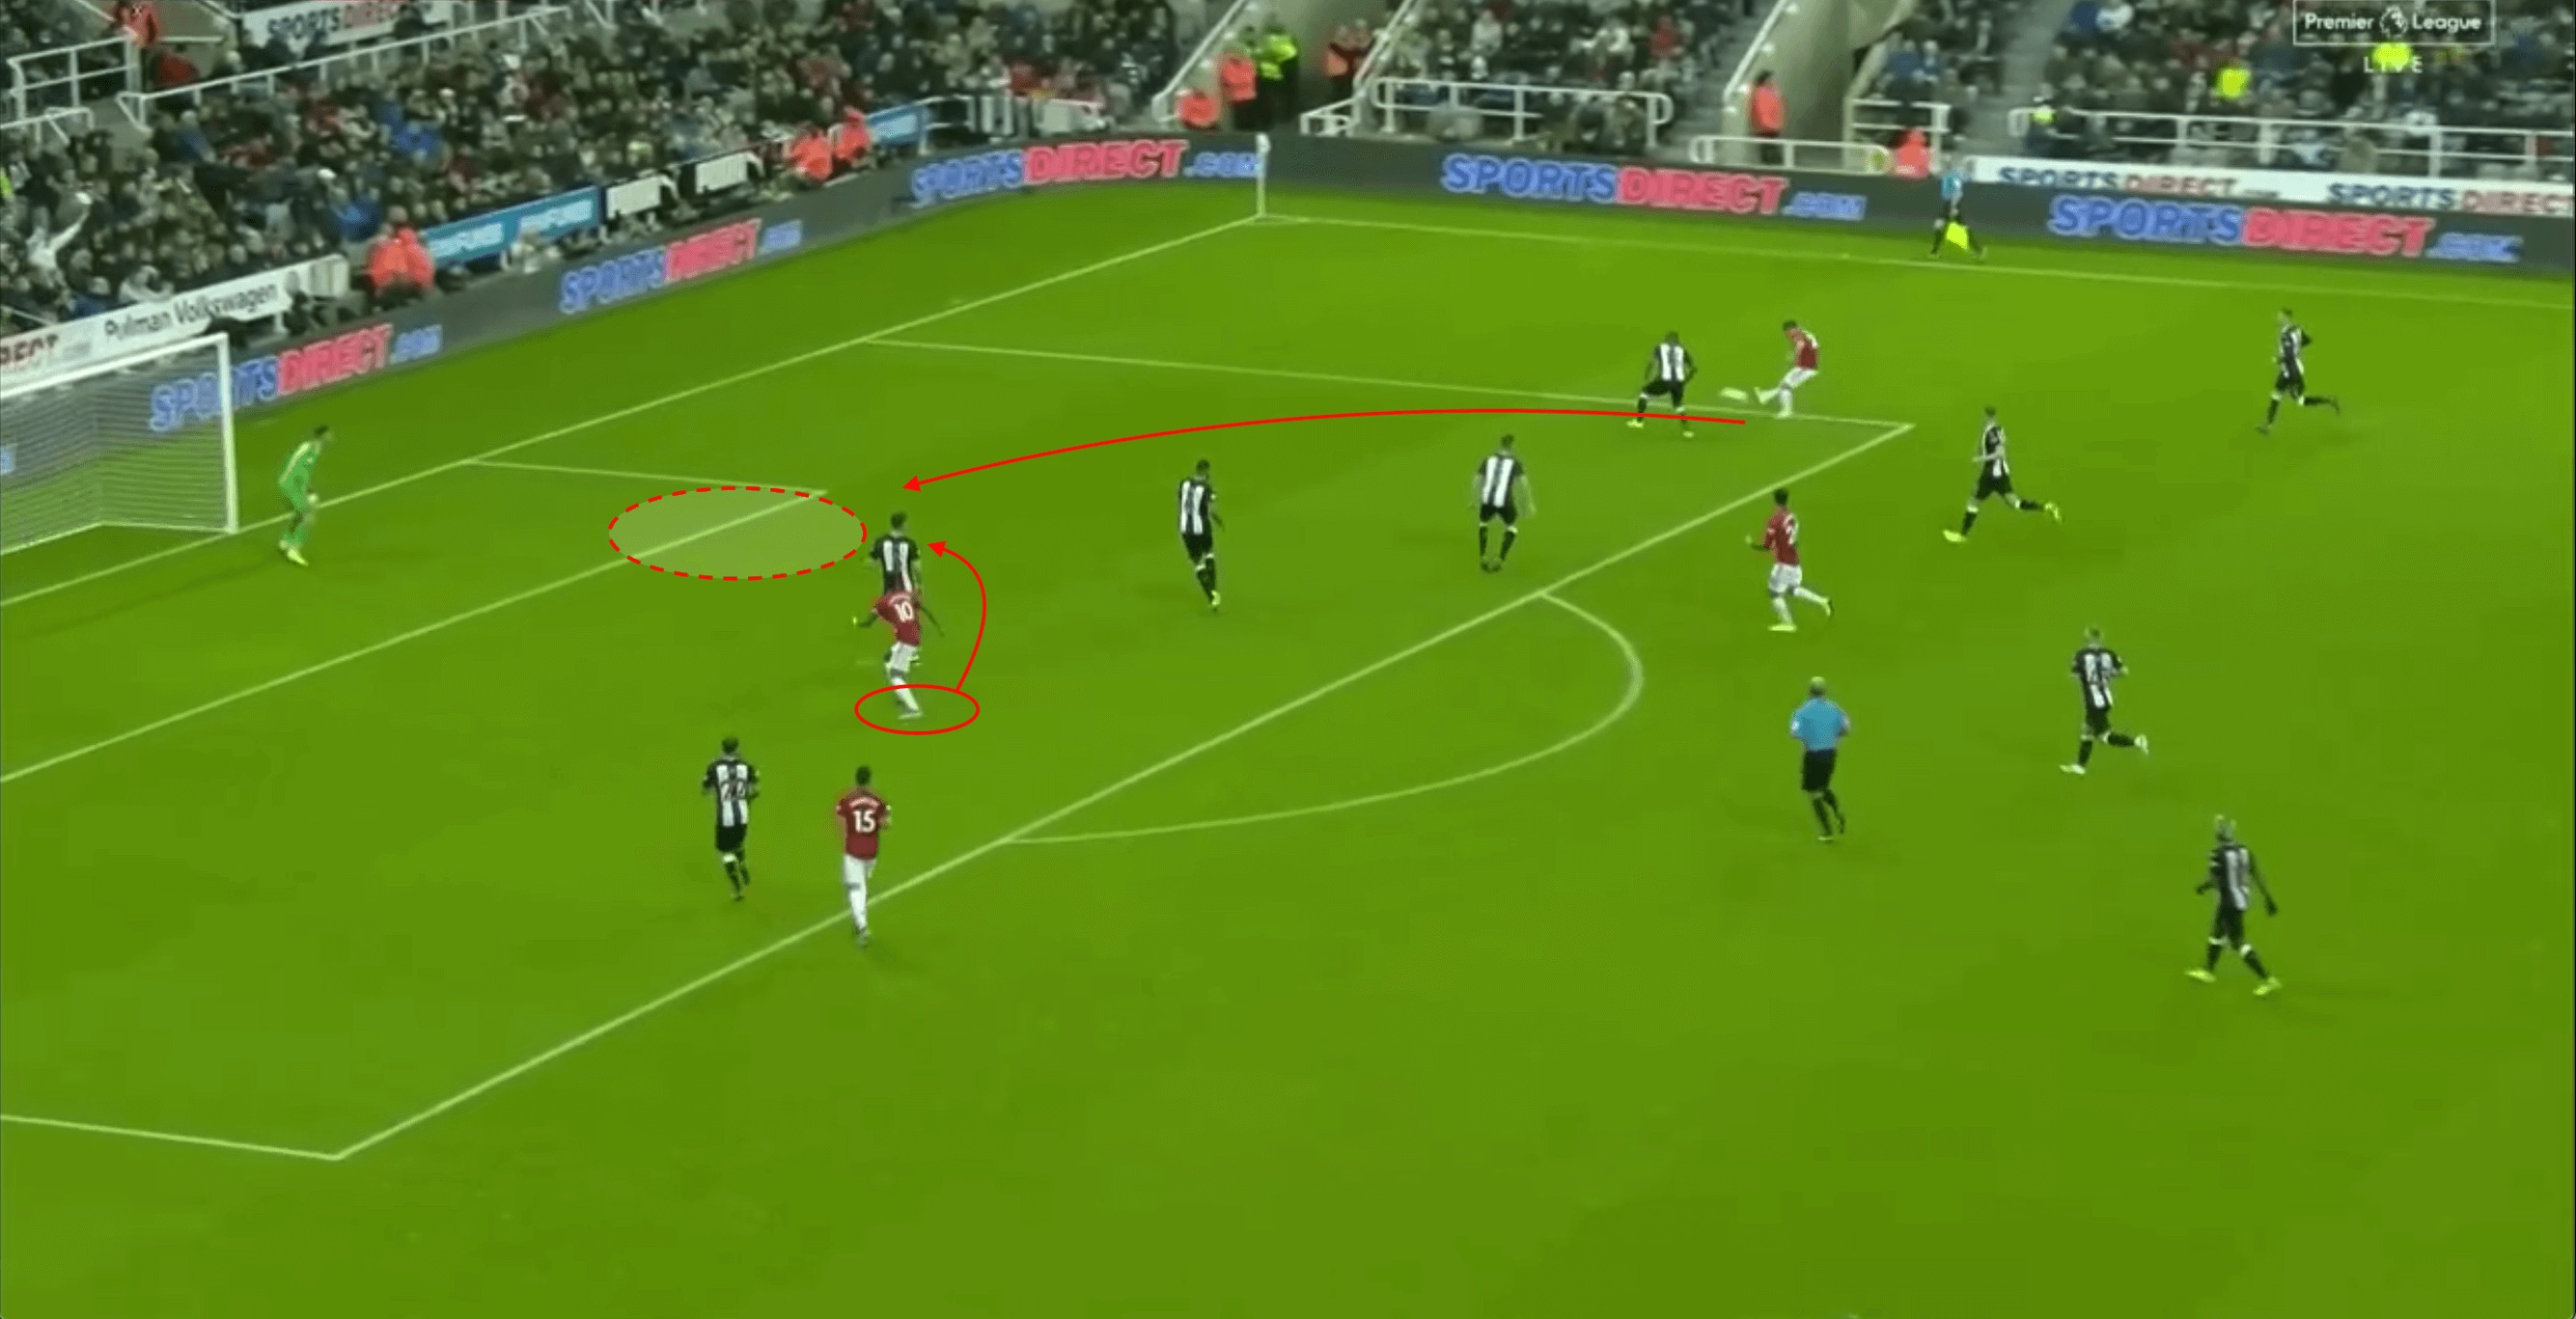 Premier League 2019/20: Newcastle vs Man United - tactical analysis tactics